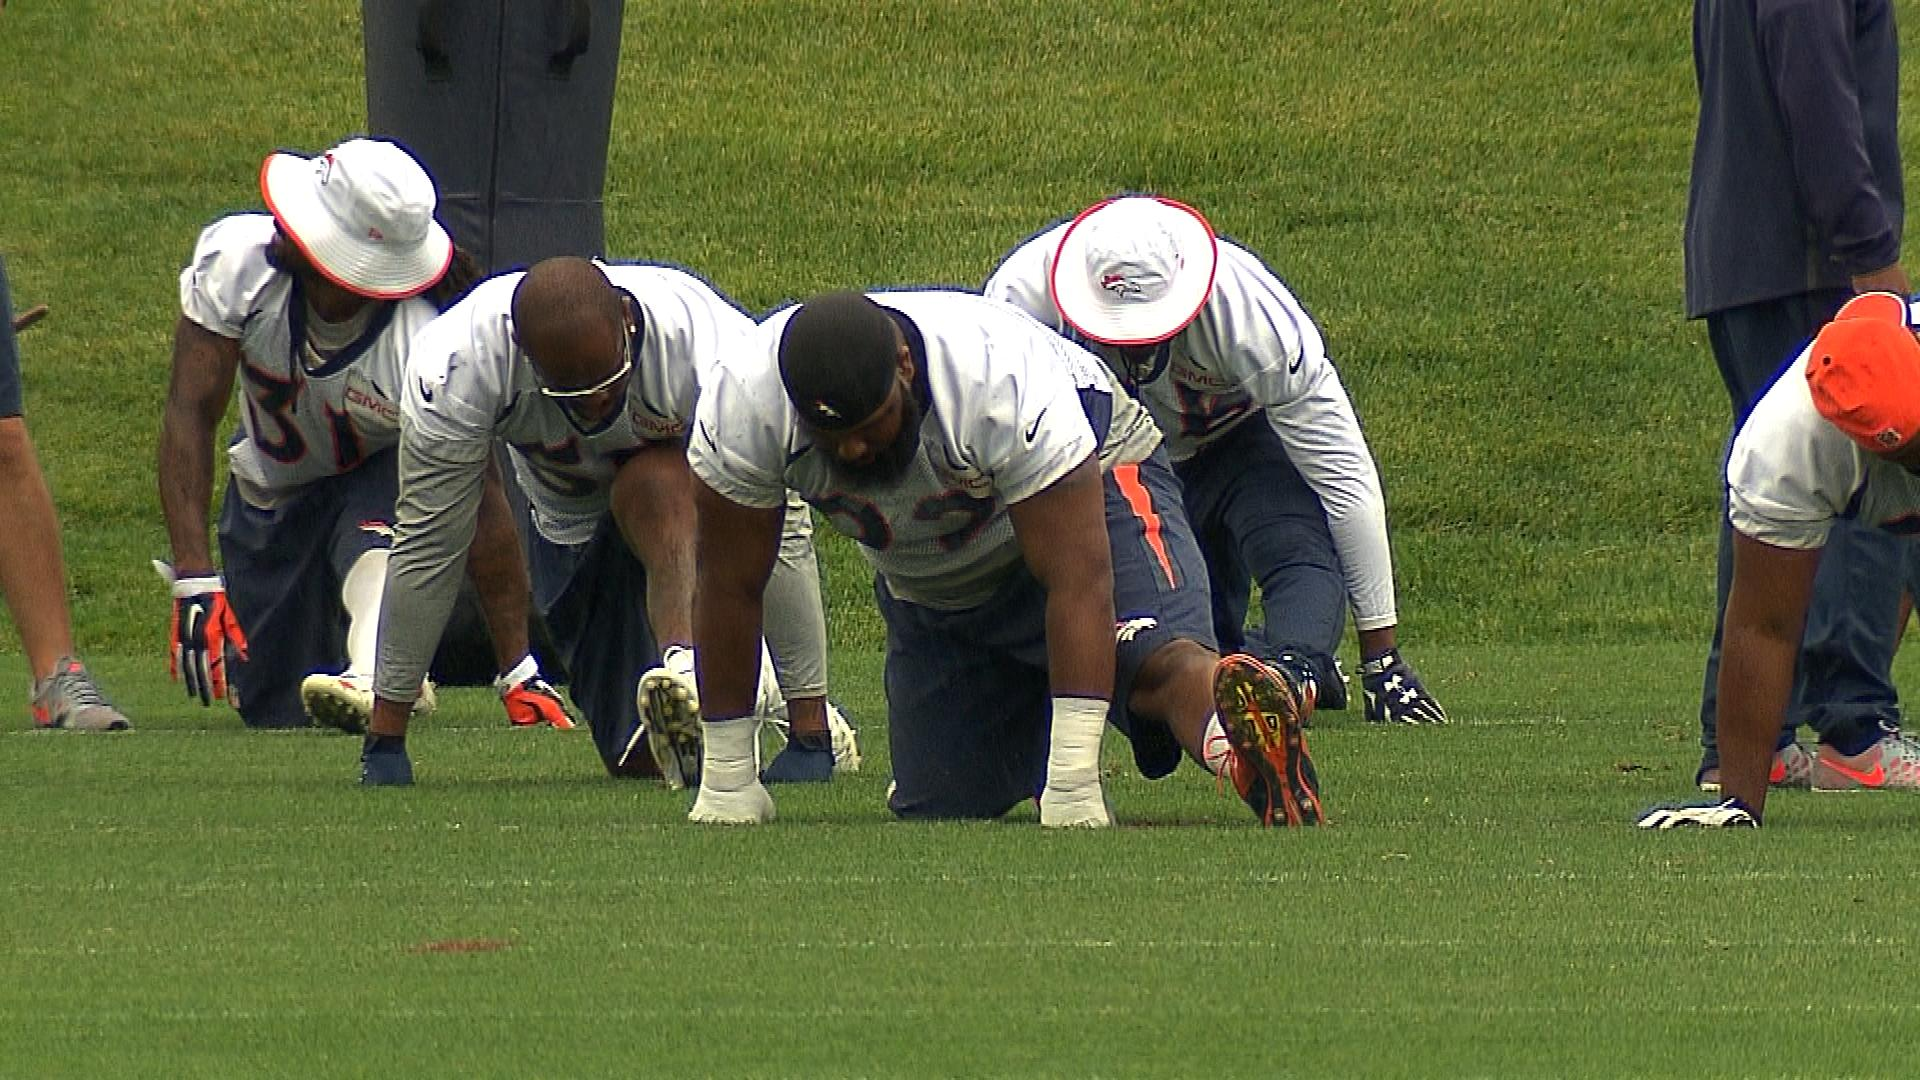 Linebacker Von Miller and nose tackle Sylvester Williams (credit: CBS)